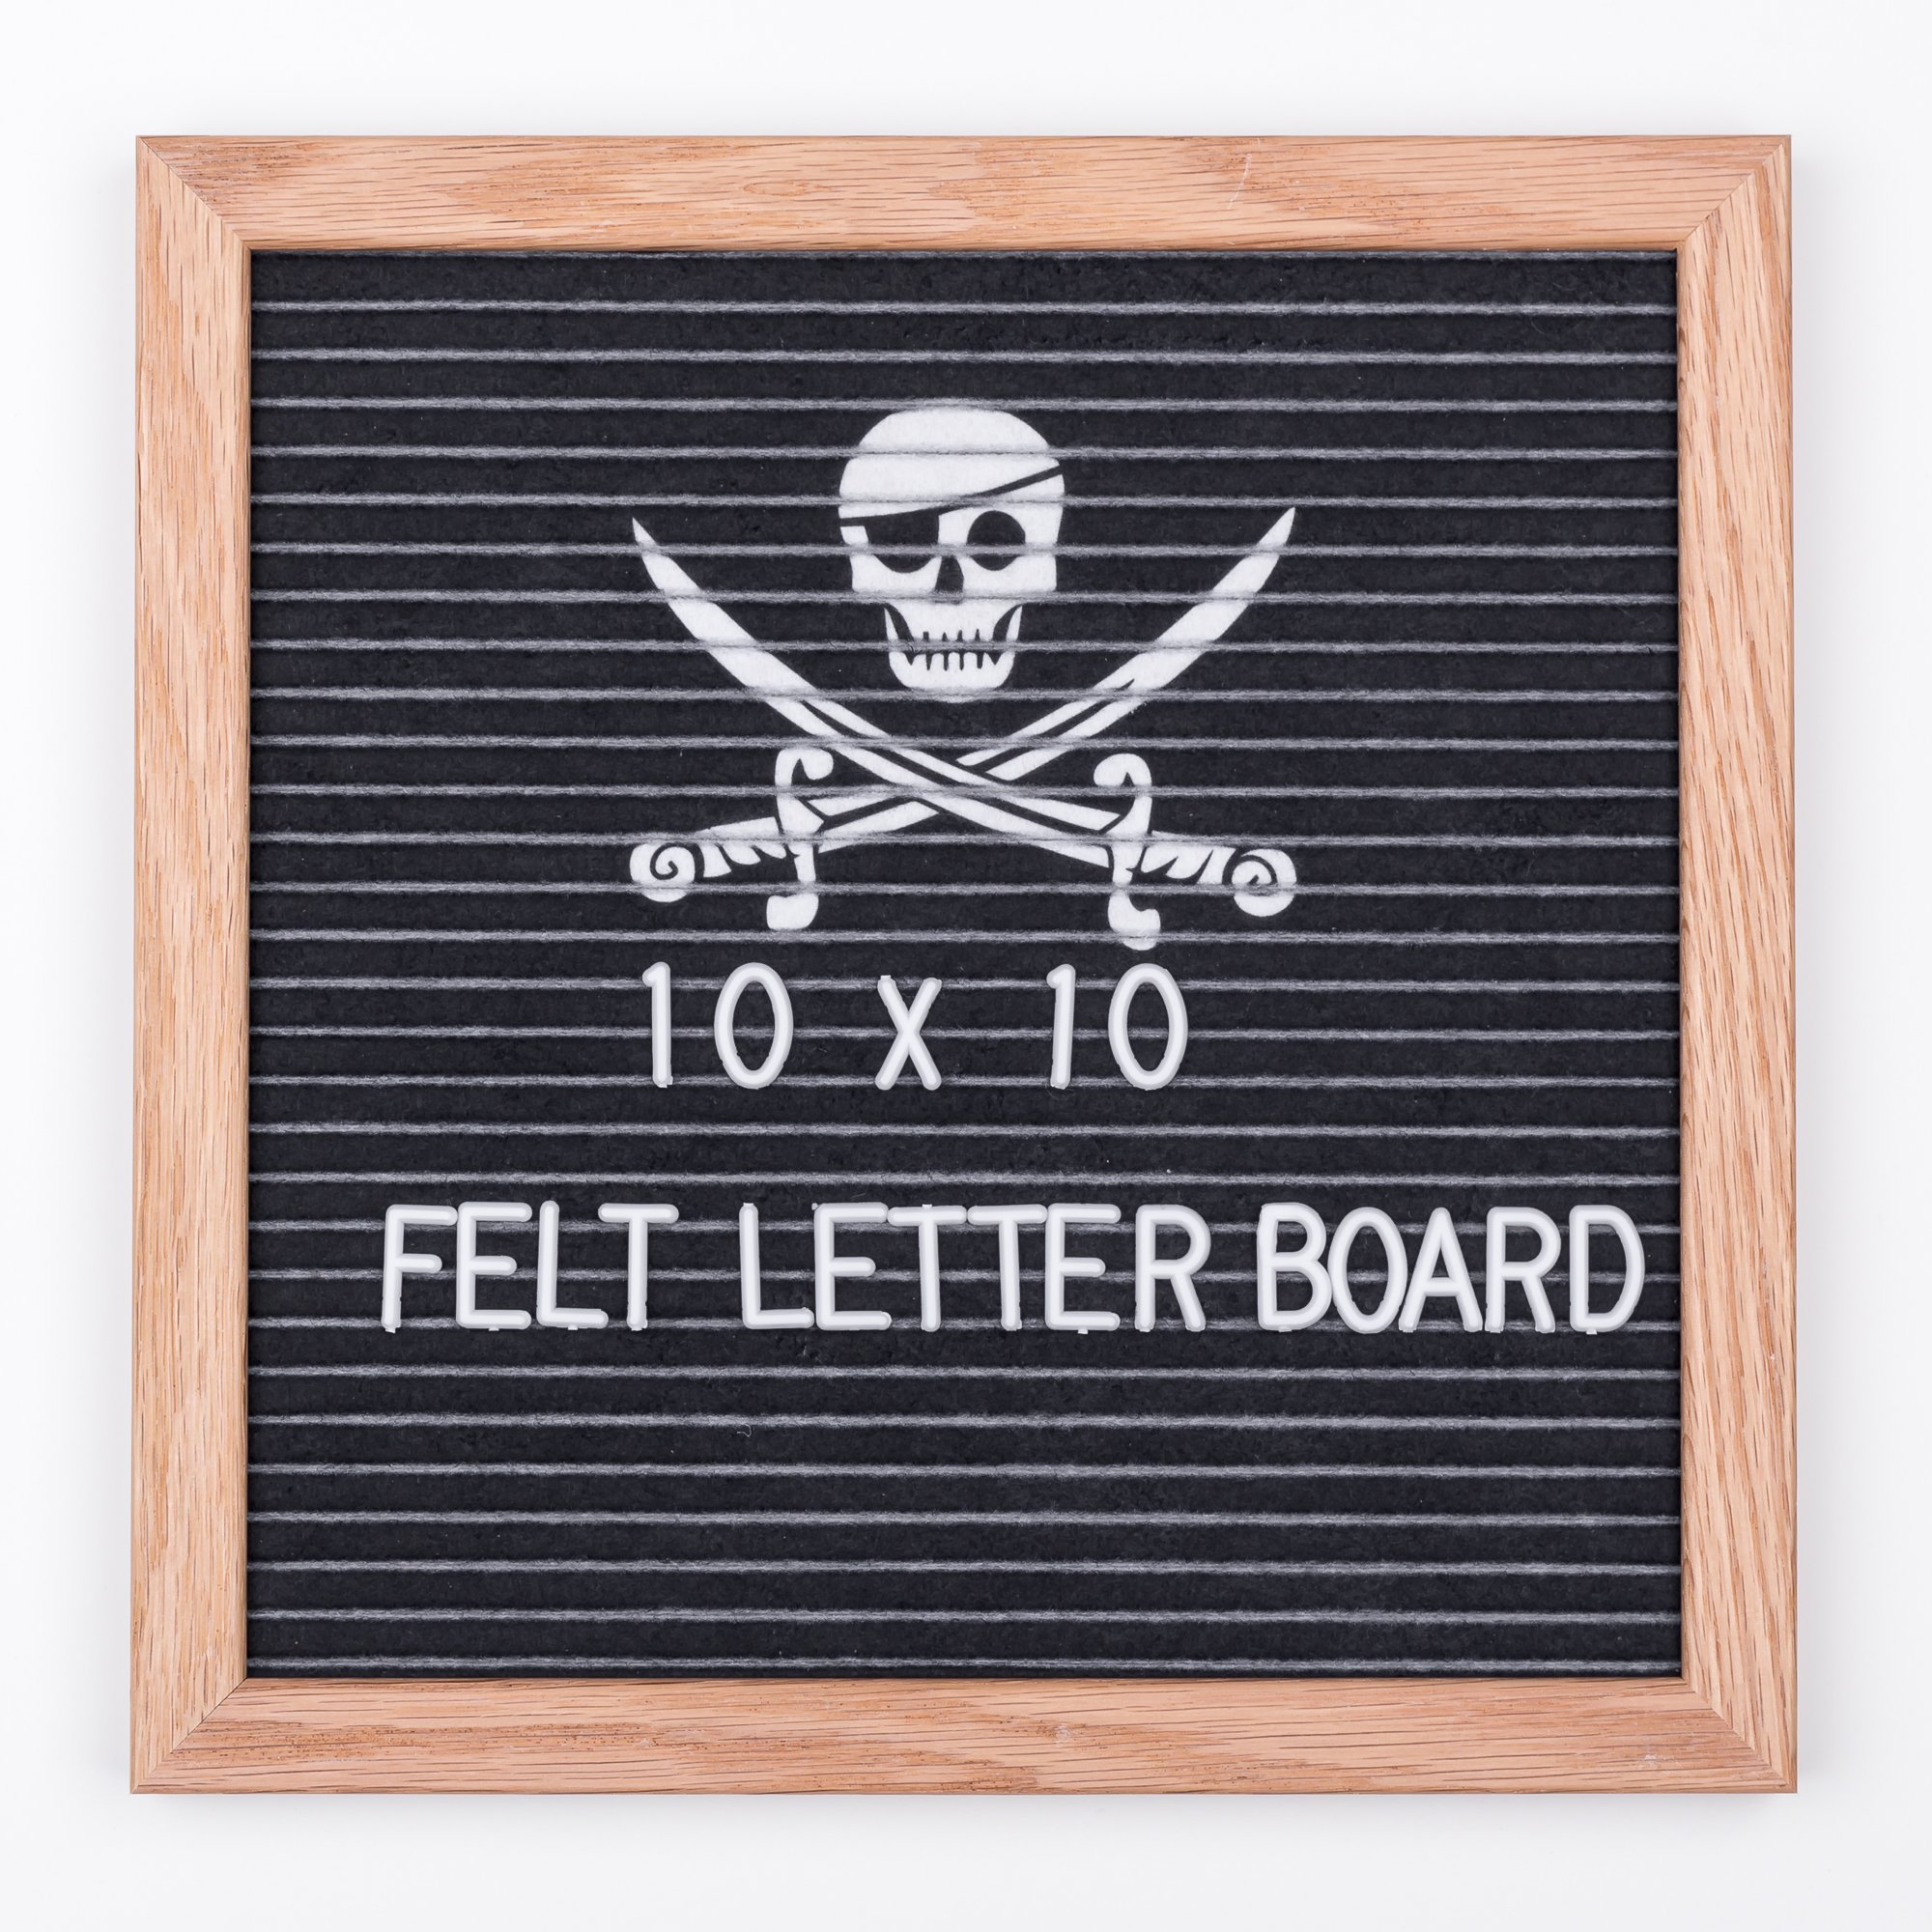 Felt Letter Board,10x10 Inch,Oak Wood Frame,Black Felt with Pirate Skull Image Background,Changeable Message Sign Board Includes Letters, Storage Bag,Scissors,Wall Hanging Hook and Metal Stand